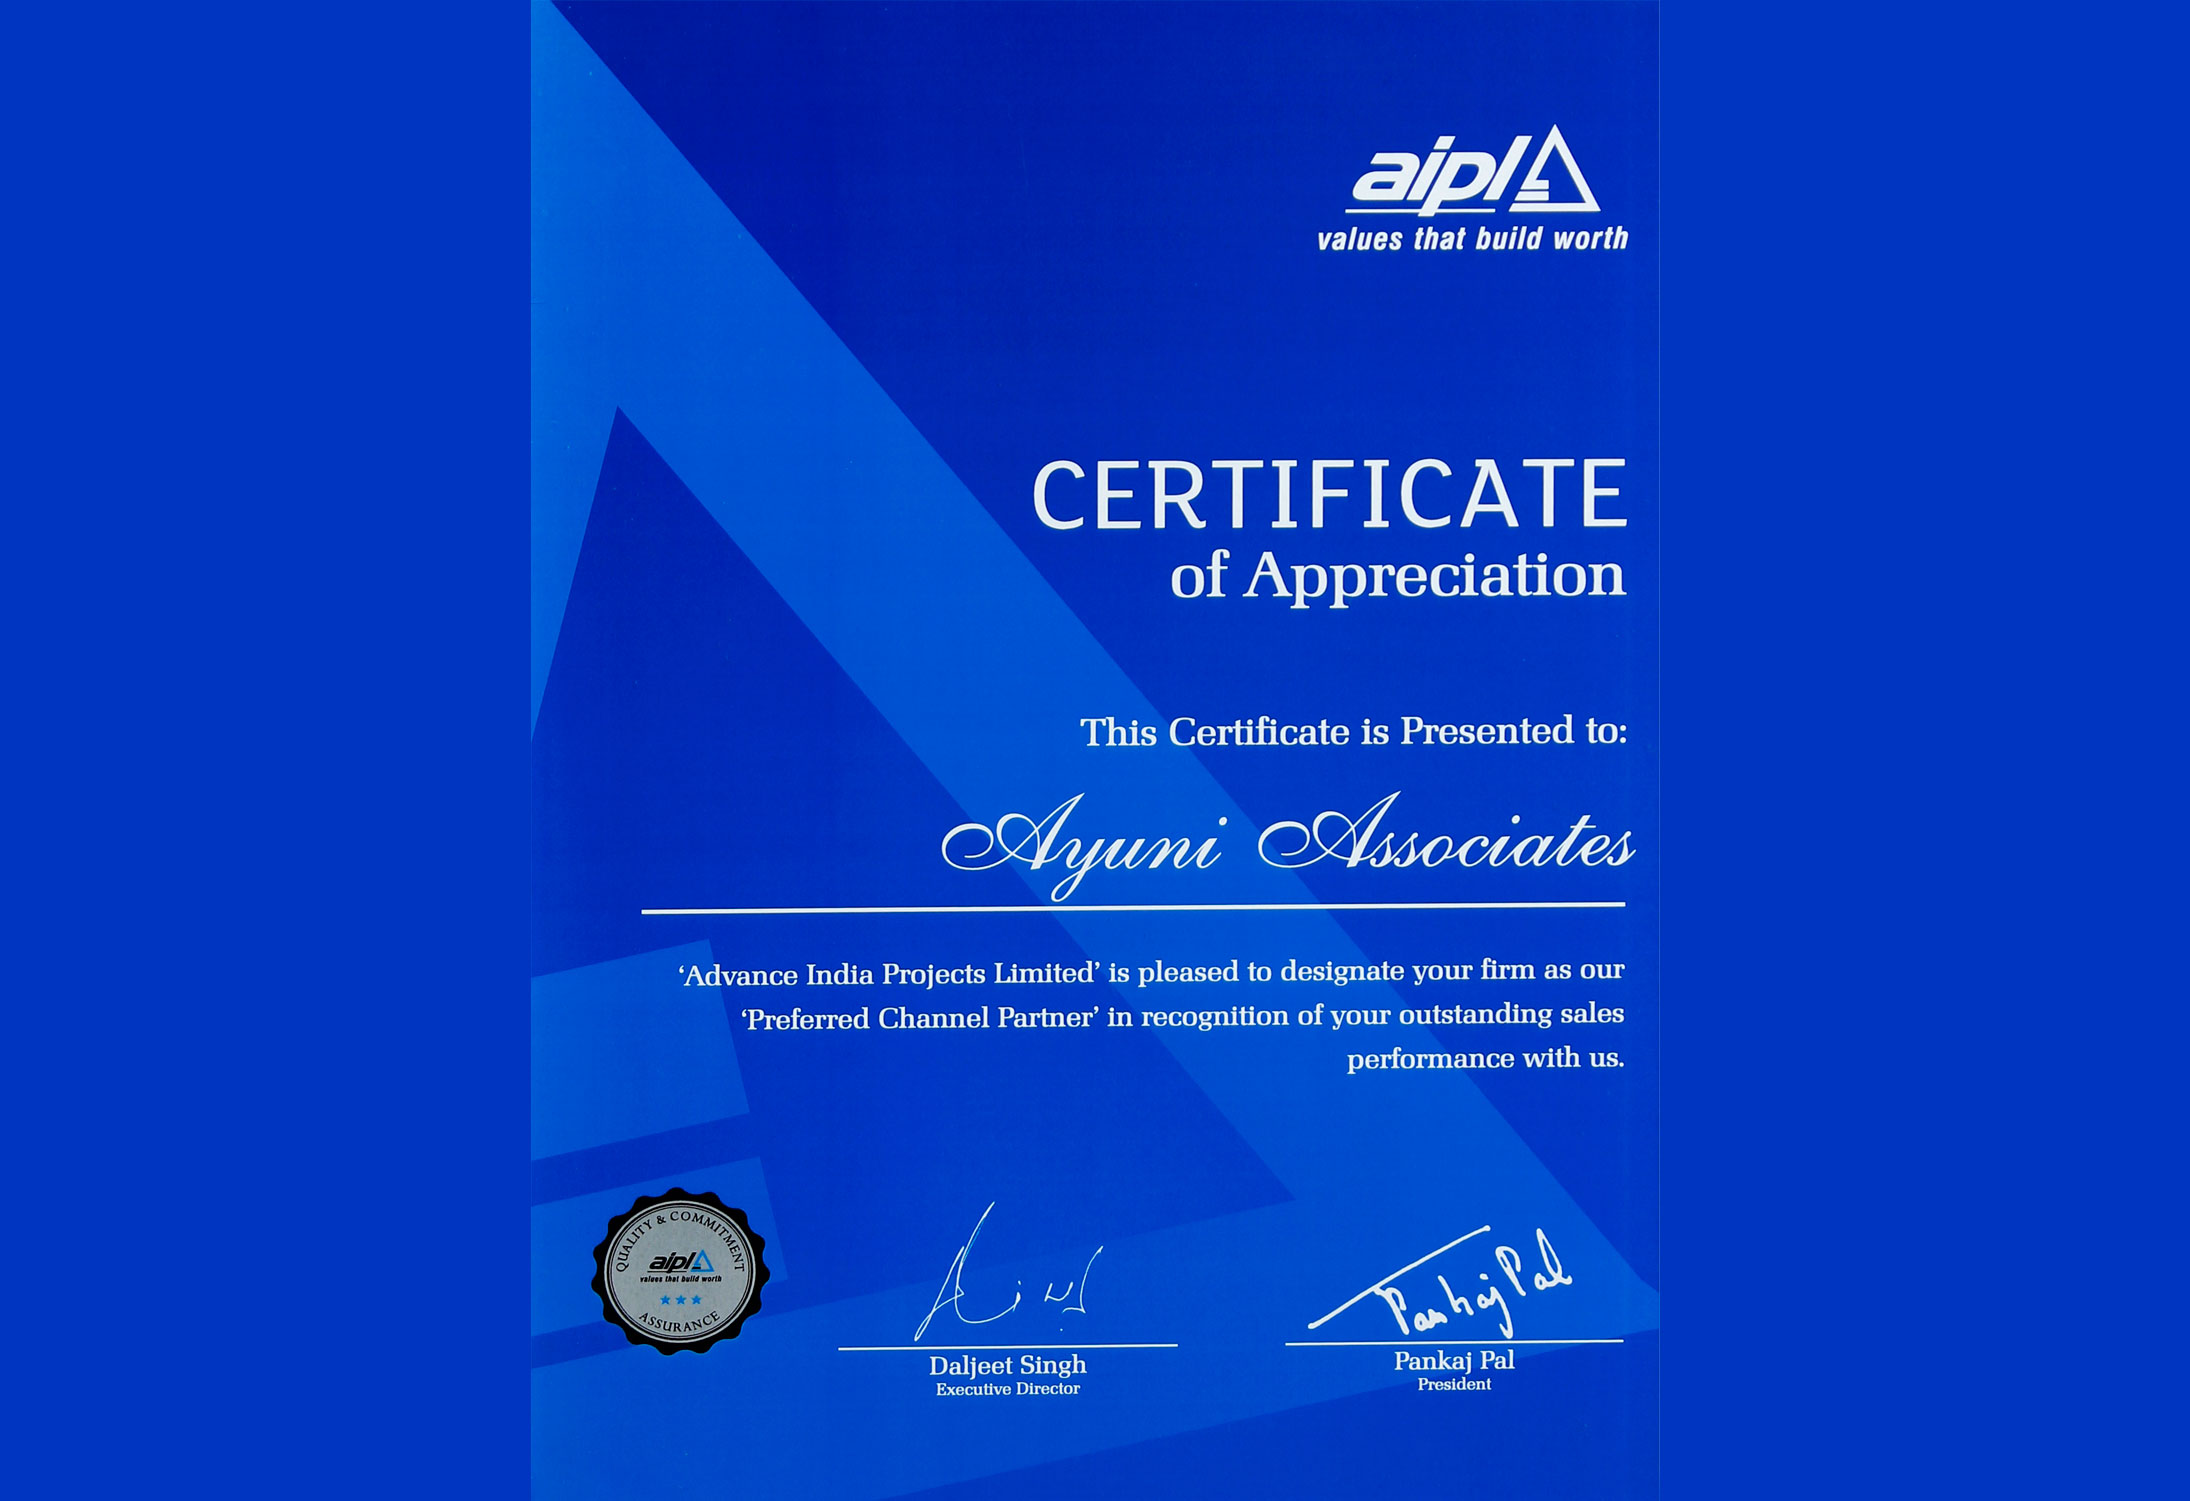 AIPL - Certificate of Appreciation